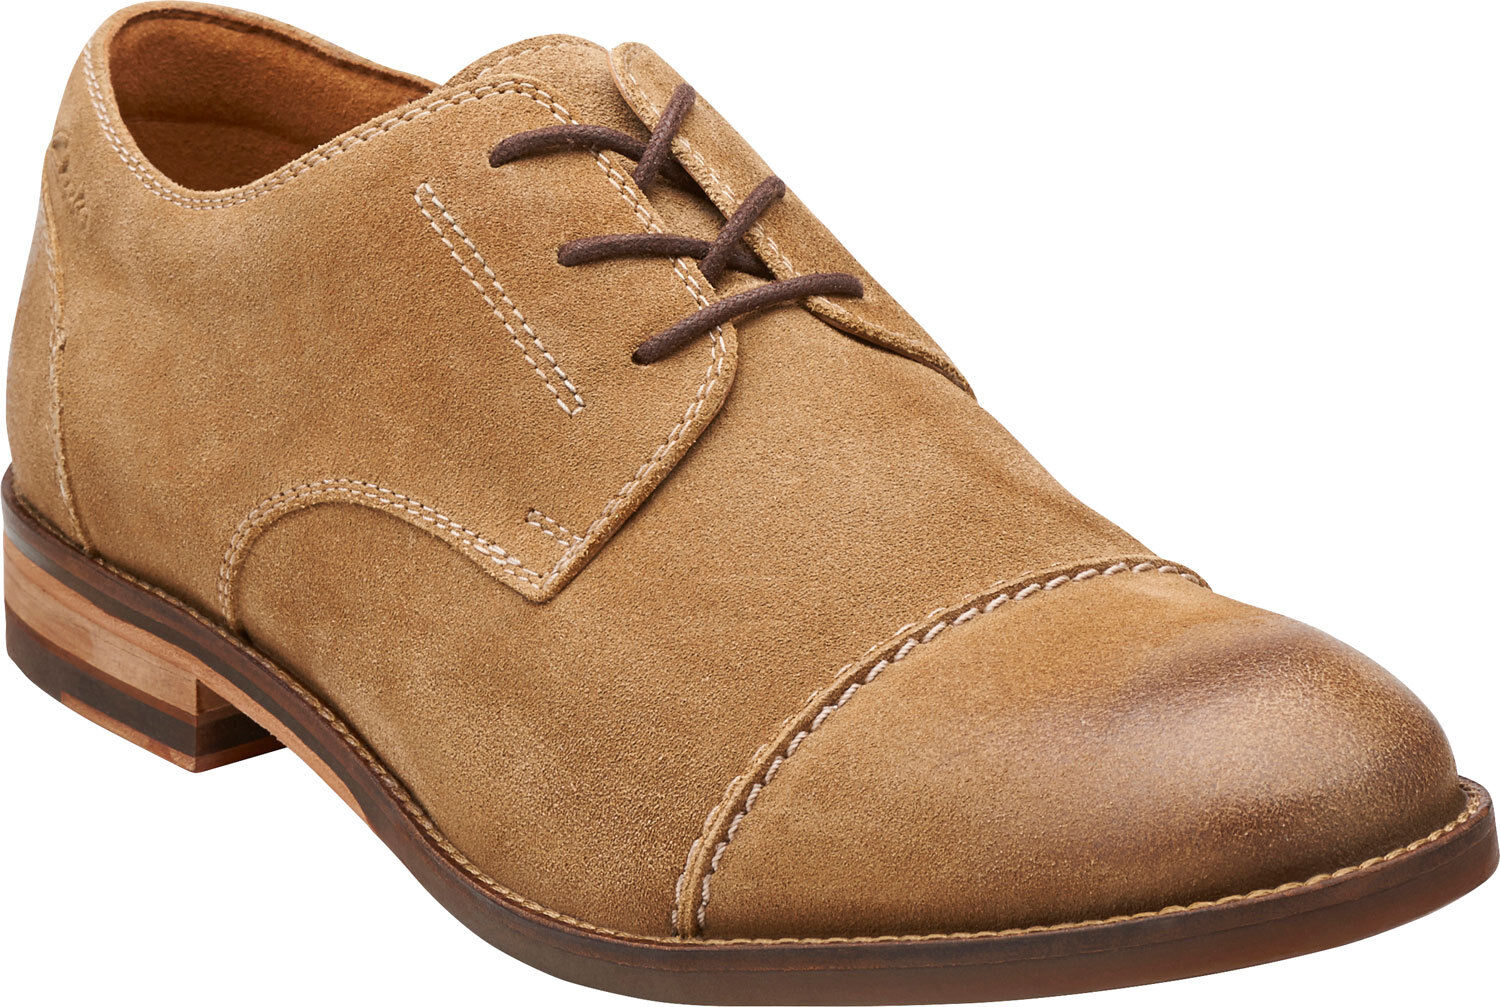 Men's Clarks 1825 Collection Exton Cap LaceUp shoes Taupe Suede 26107748